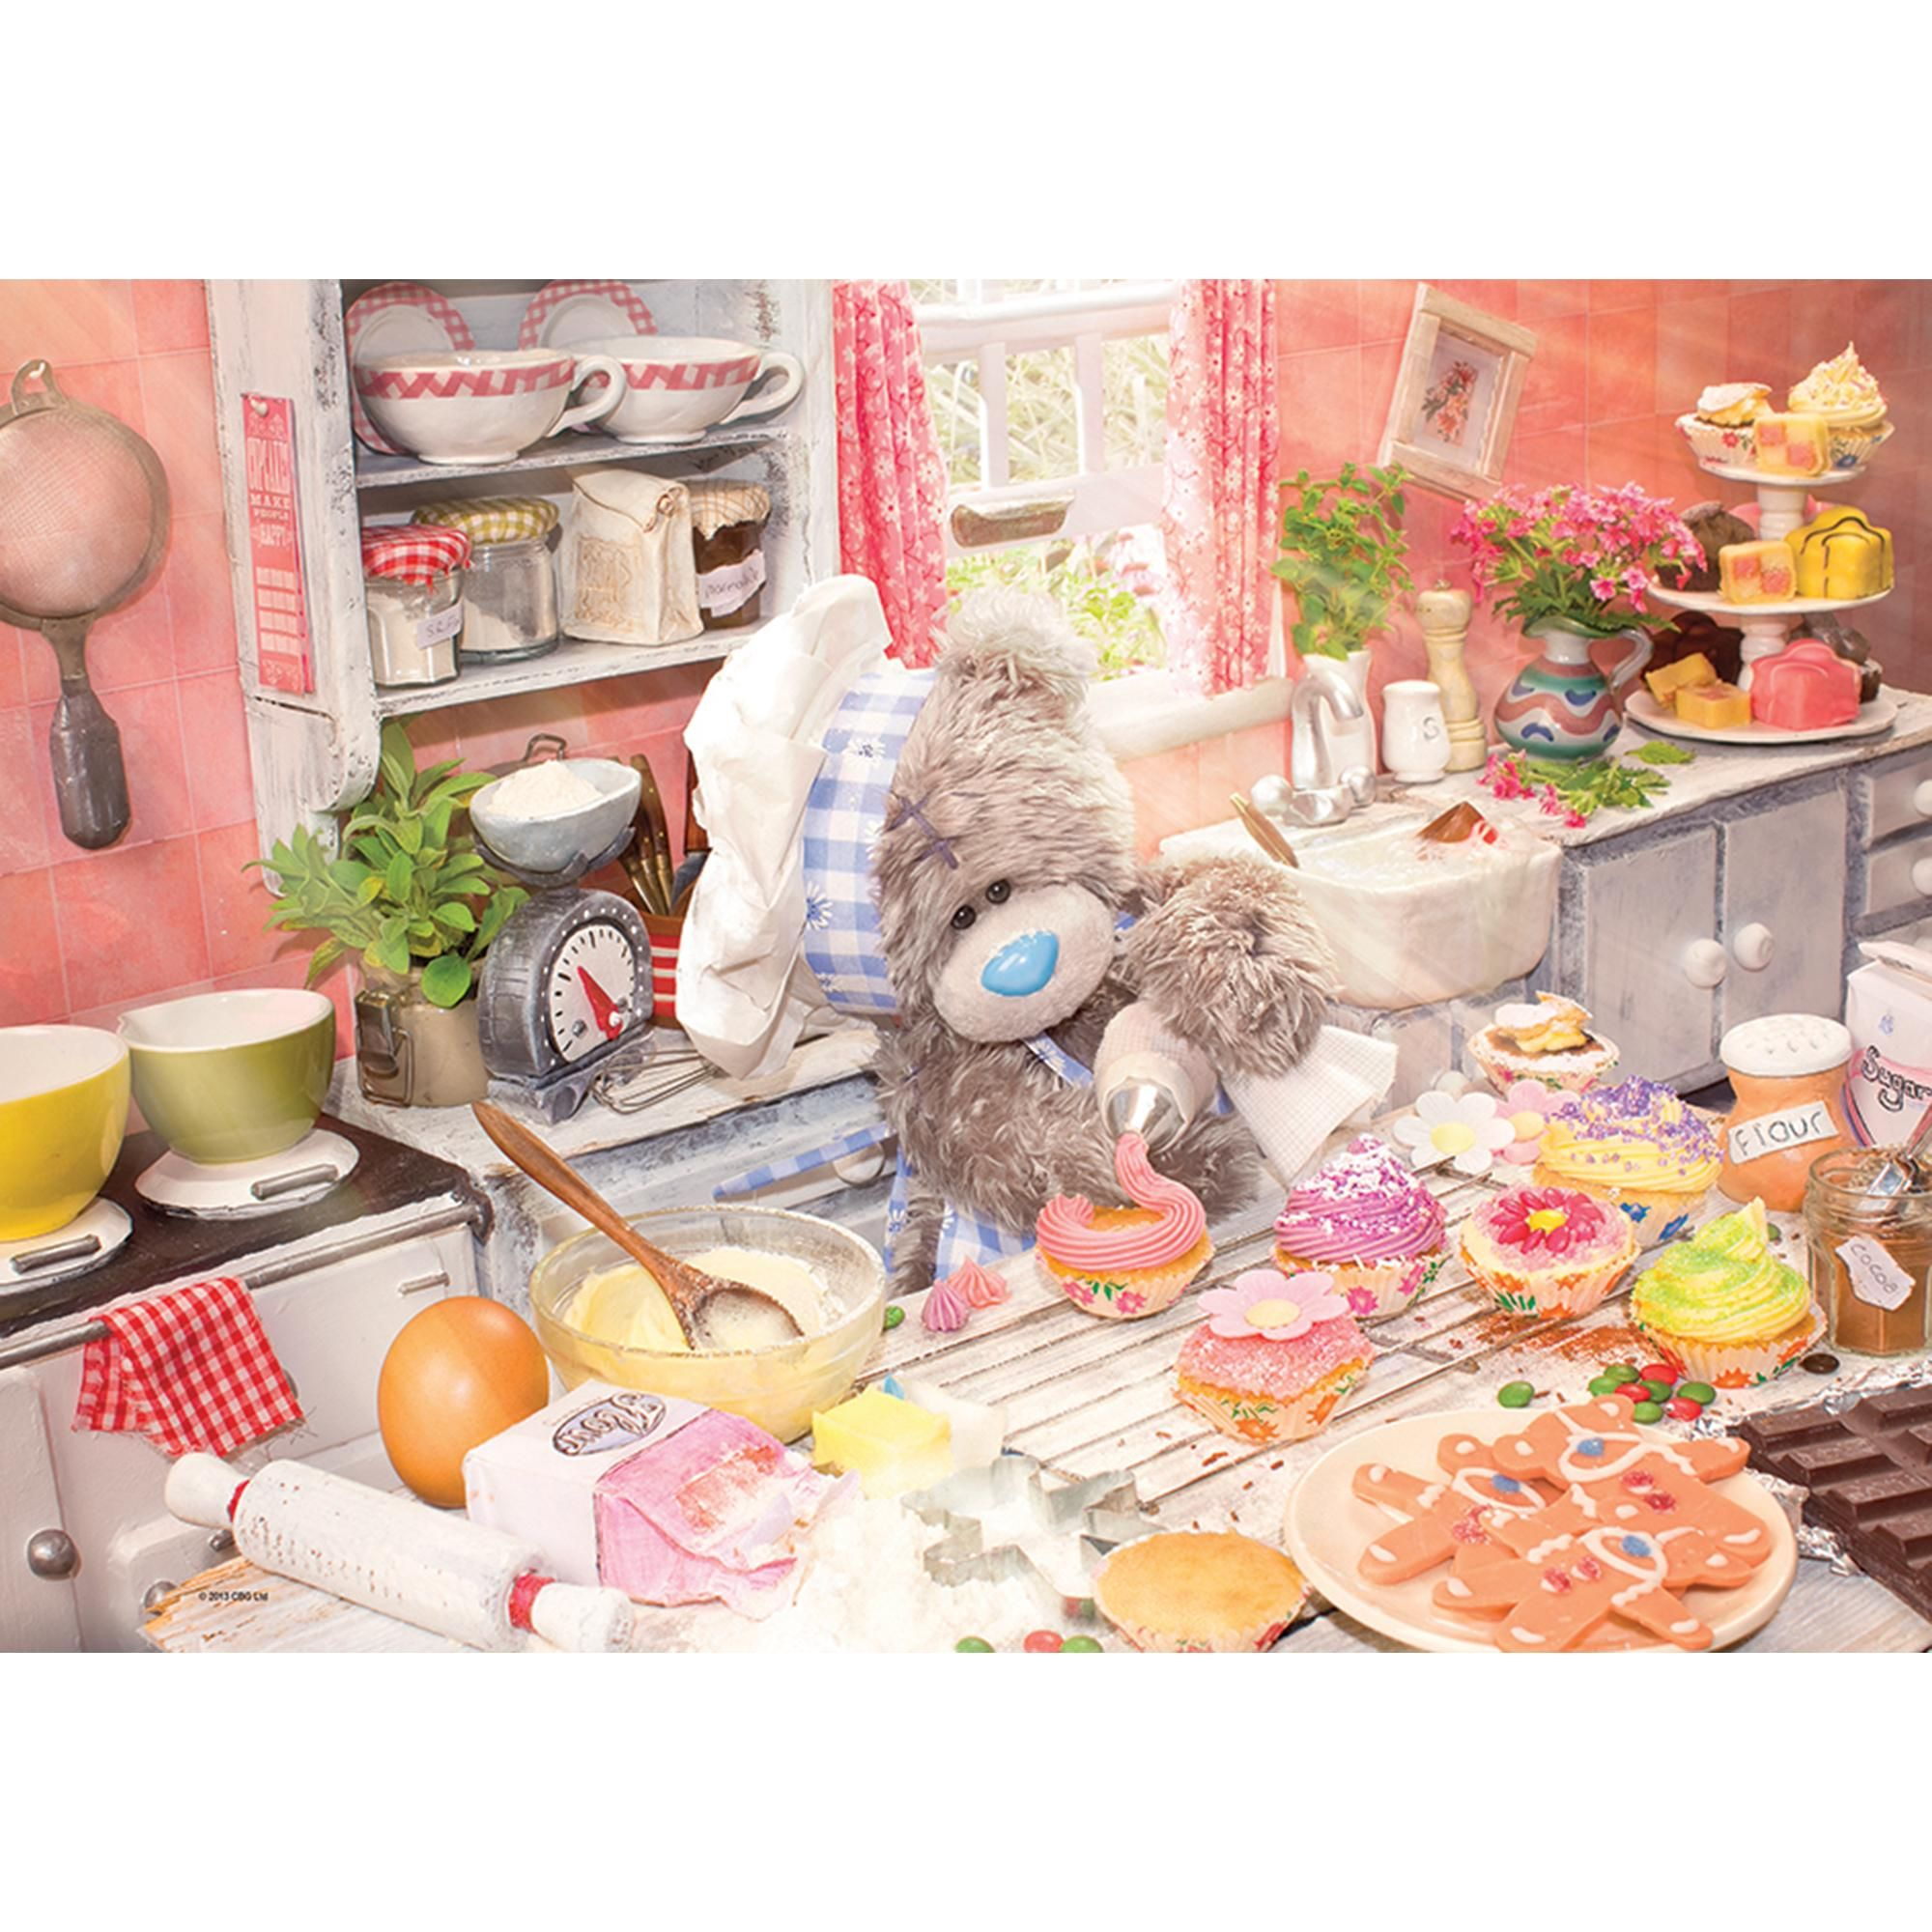 Ravensburger Me To You Home Baking 1000pc Jigsaw Puzzle